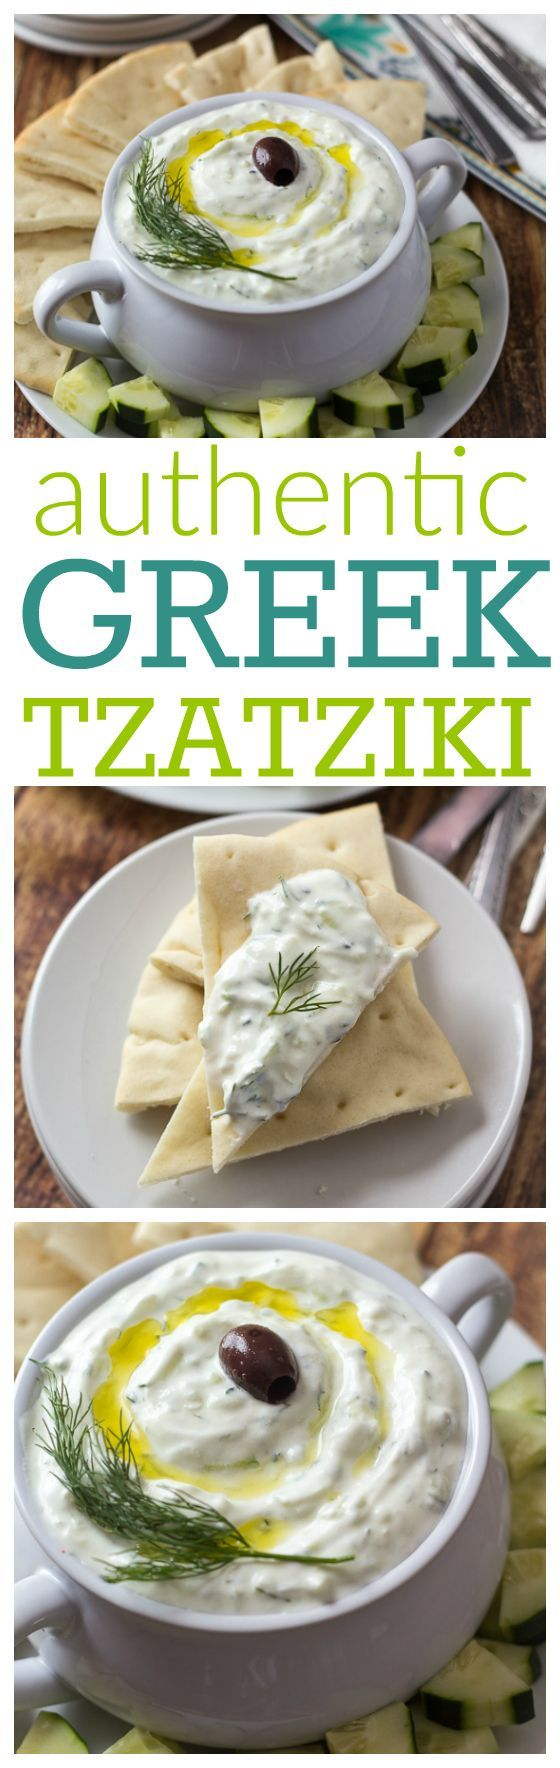 Best 136 greek food recipes images on pinterest cooking food she learned how to make it while visiting athens this is the best way to forumfinder Image collections